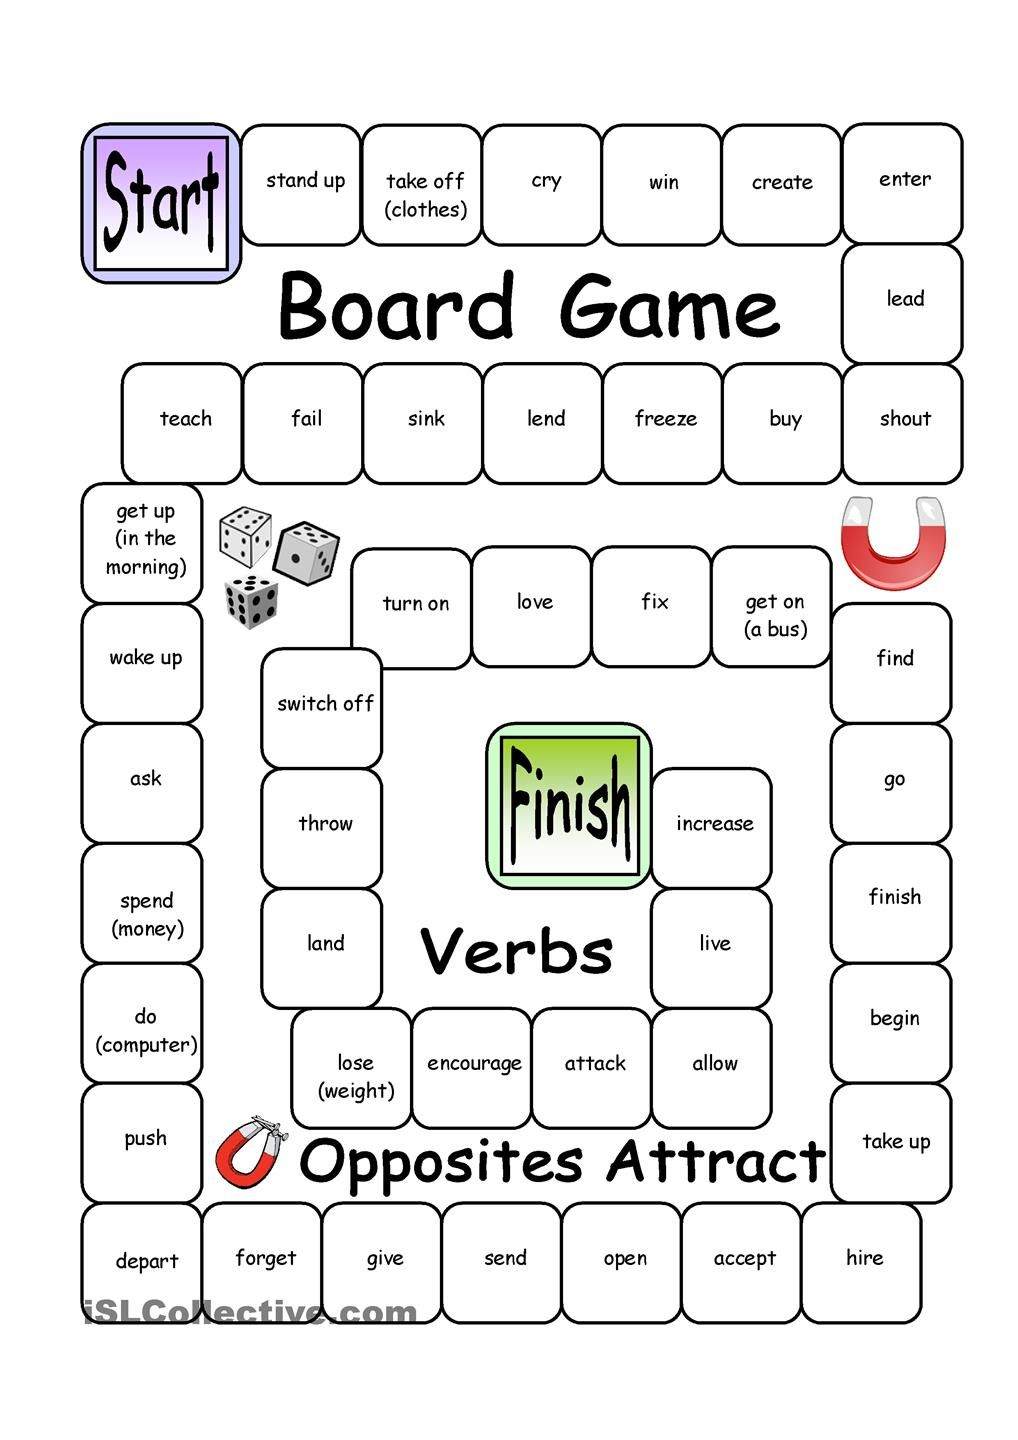 Board Game Opposites Attract Verbs Esl Teaching